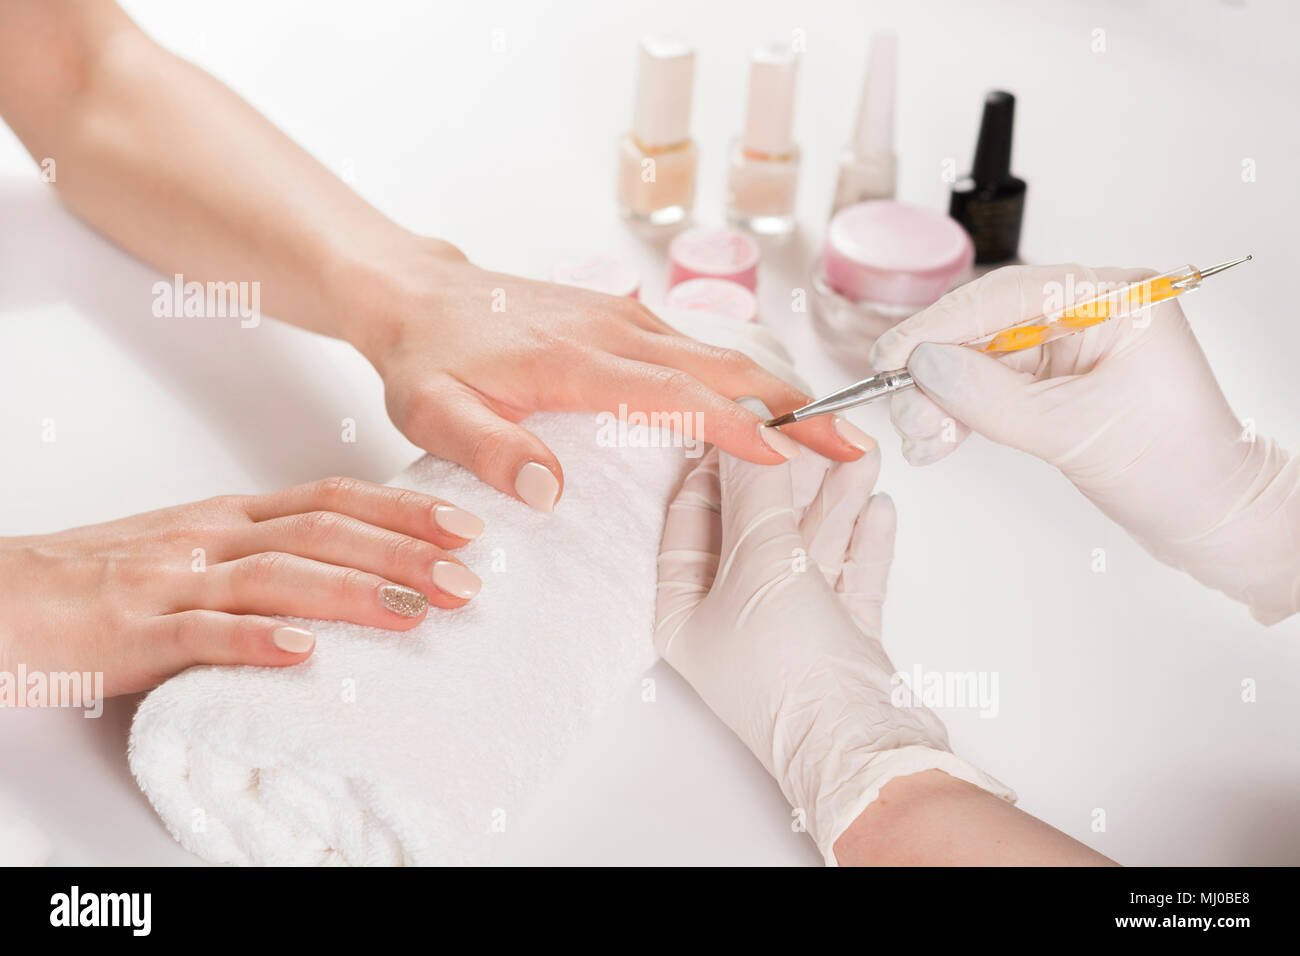 Woman hands in a nail salon receiving manicure with professional ...